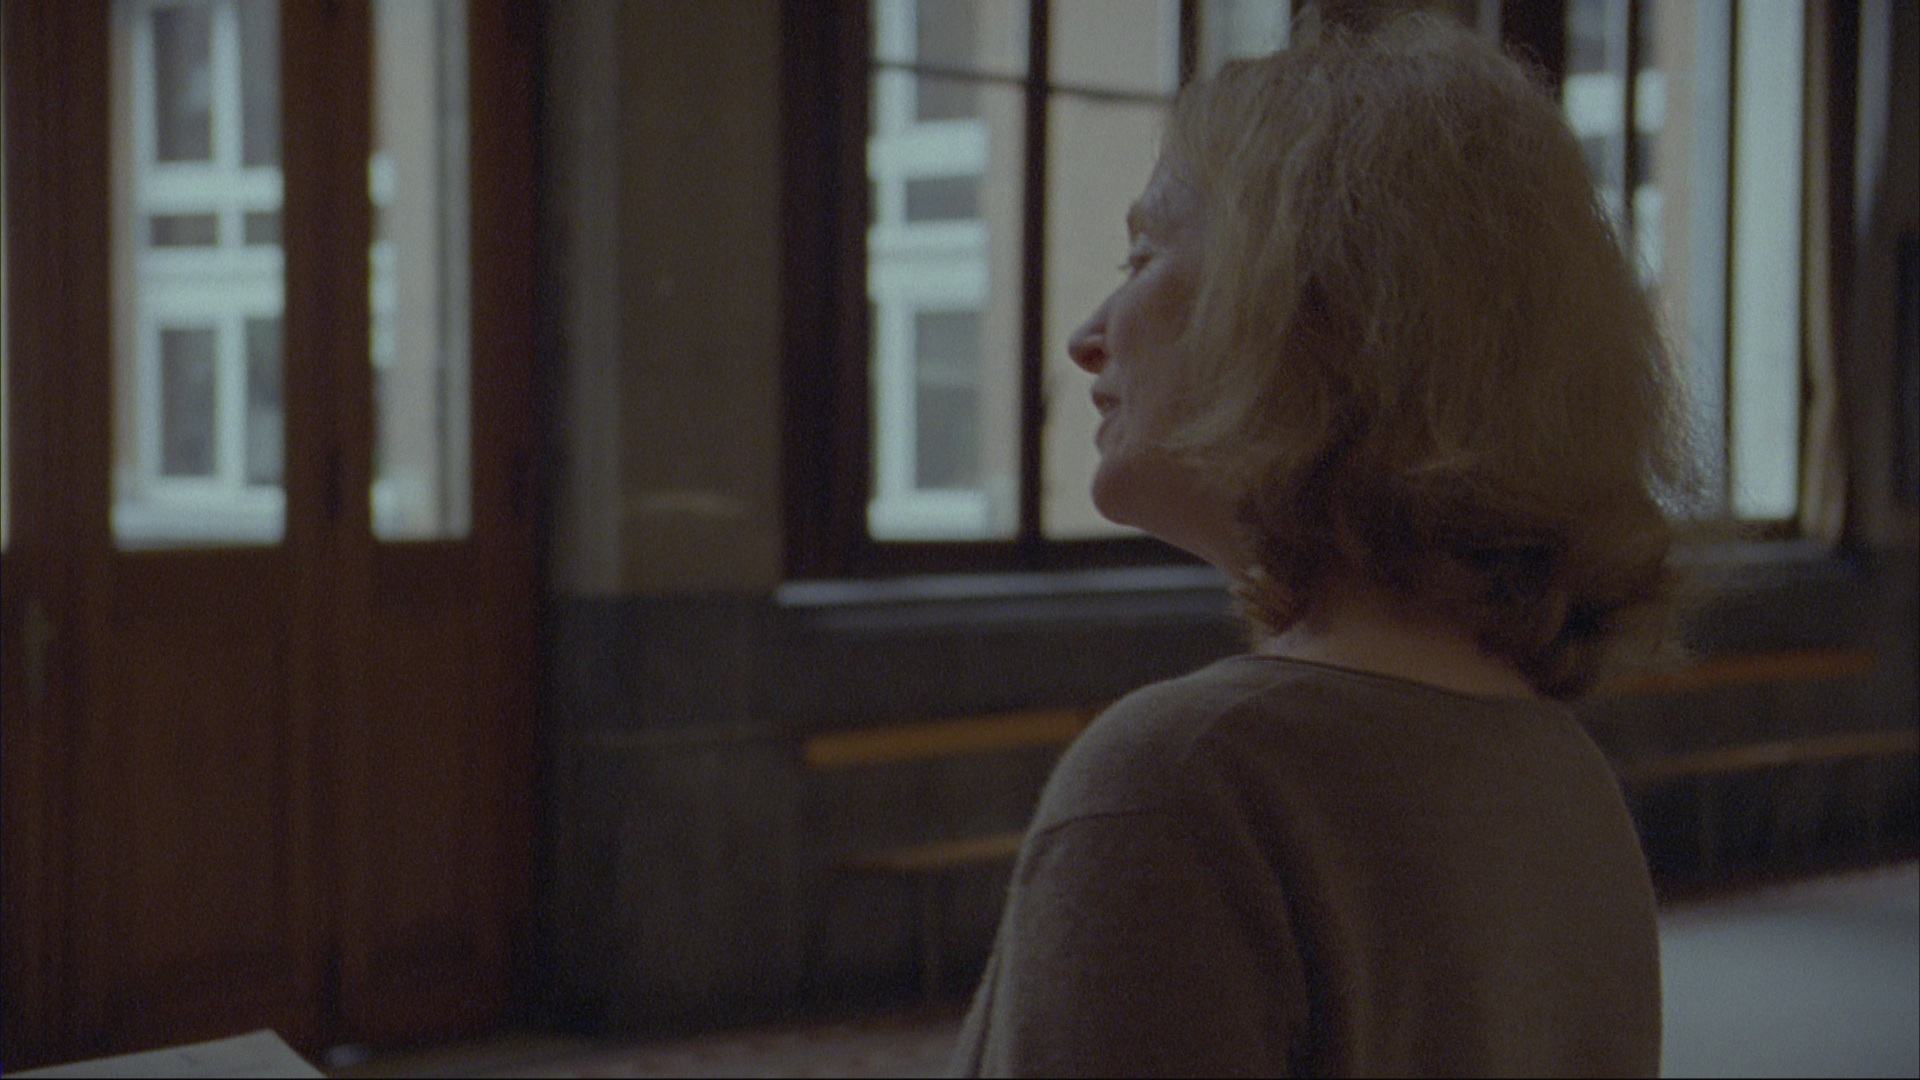 Manon de Boer, One Two Many, 2012, film still